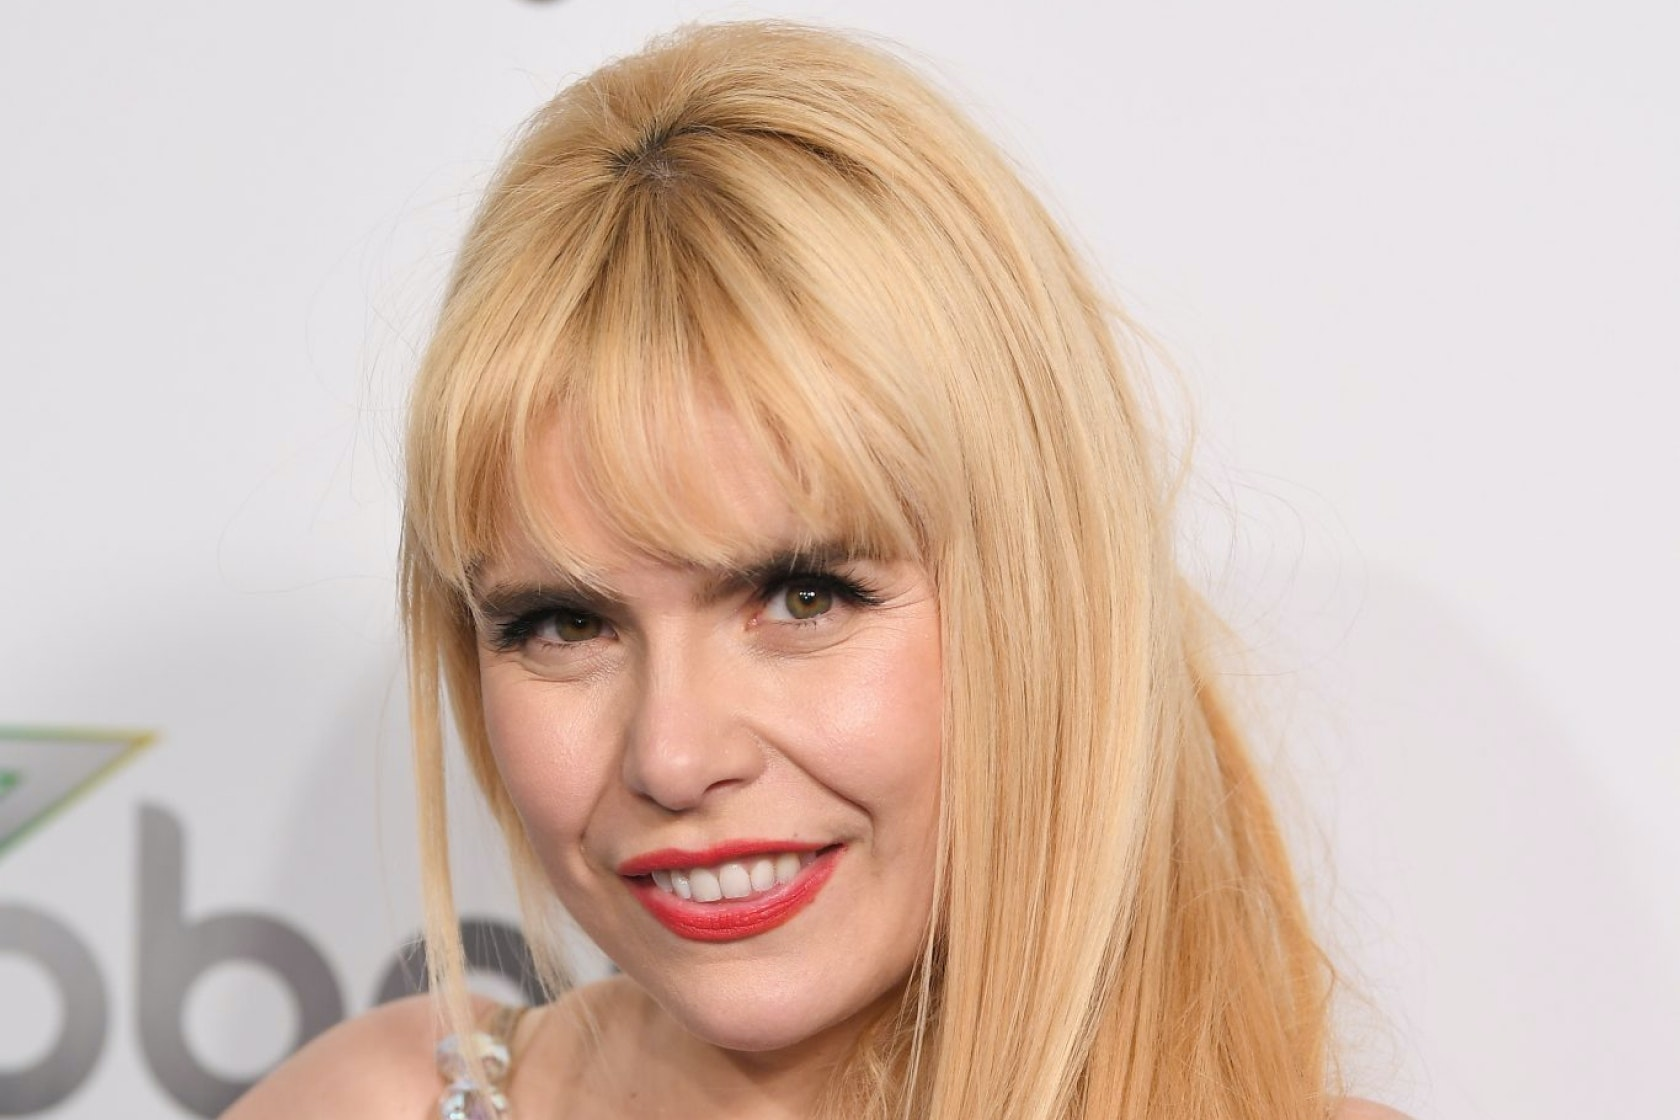 Paloma Faith naked (71 photo), Topless, Cleavage, Instagram, braless 2006